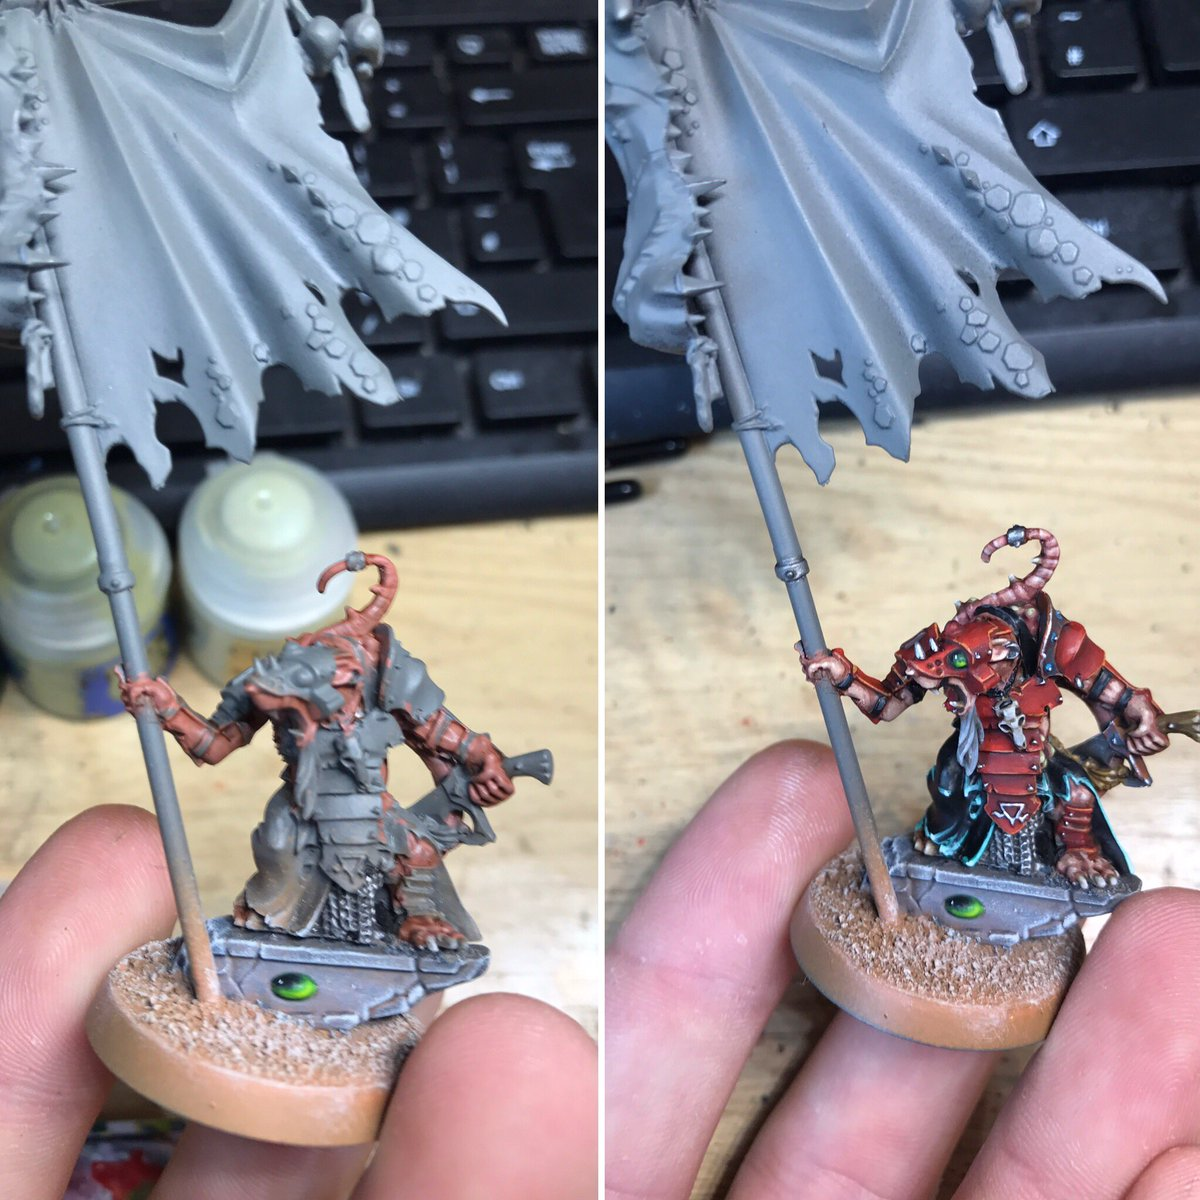 Painting my BSB. Done this much in just over 2.5 hours. Time to work o...